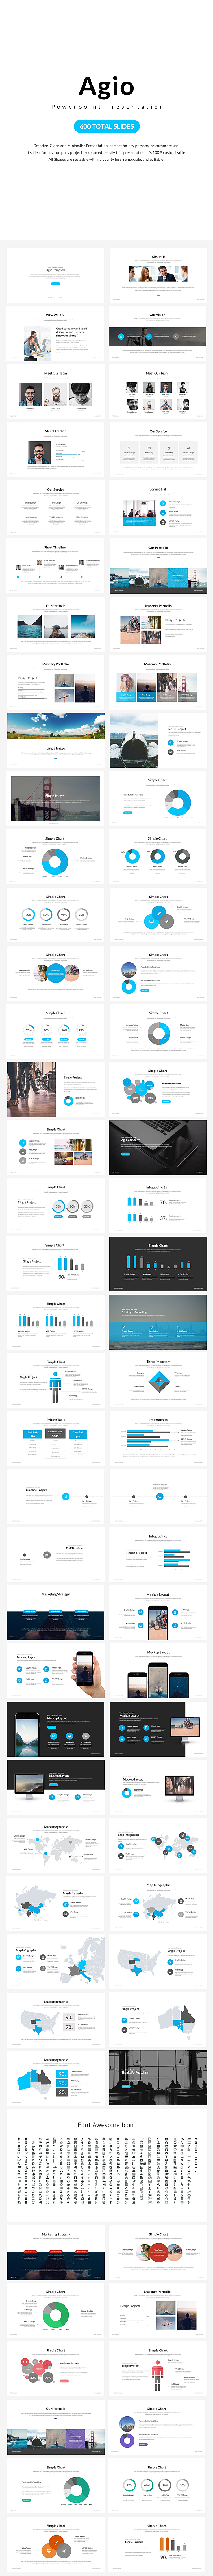 Agio Powerpoint Presentation - Business PowerPoint Templates